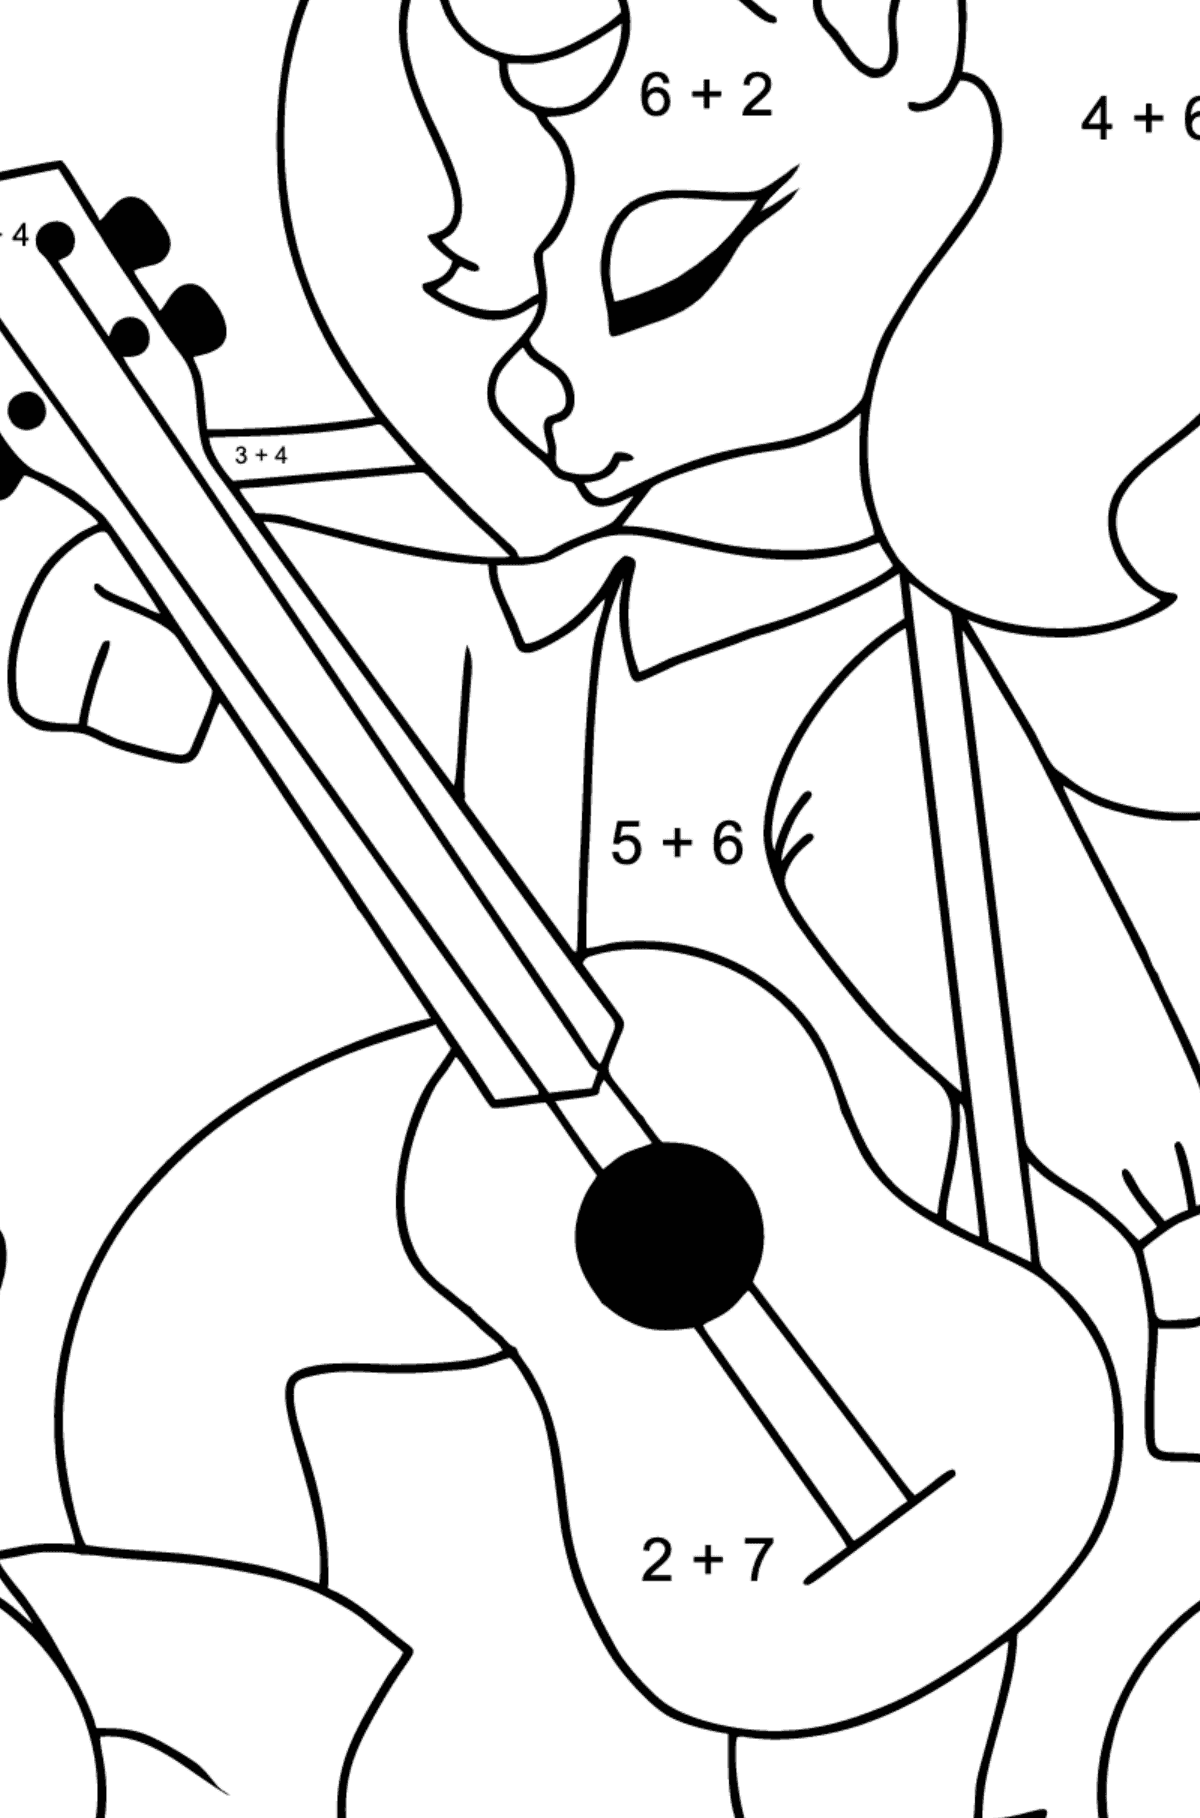 Simple Coloring Page - A Unicorn with a Guitar for Kids  - Color by Number Addition